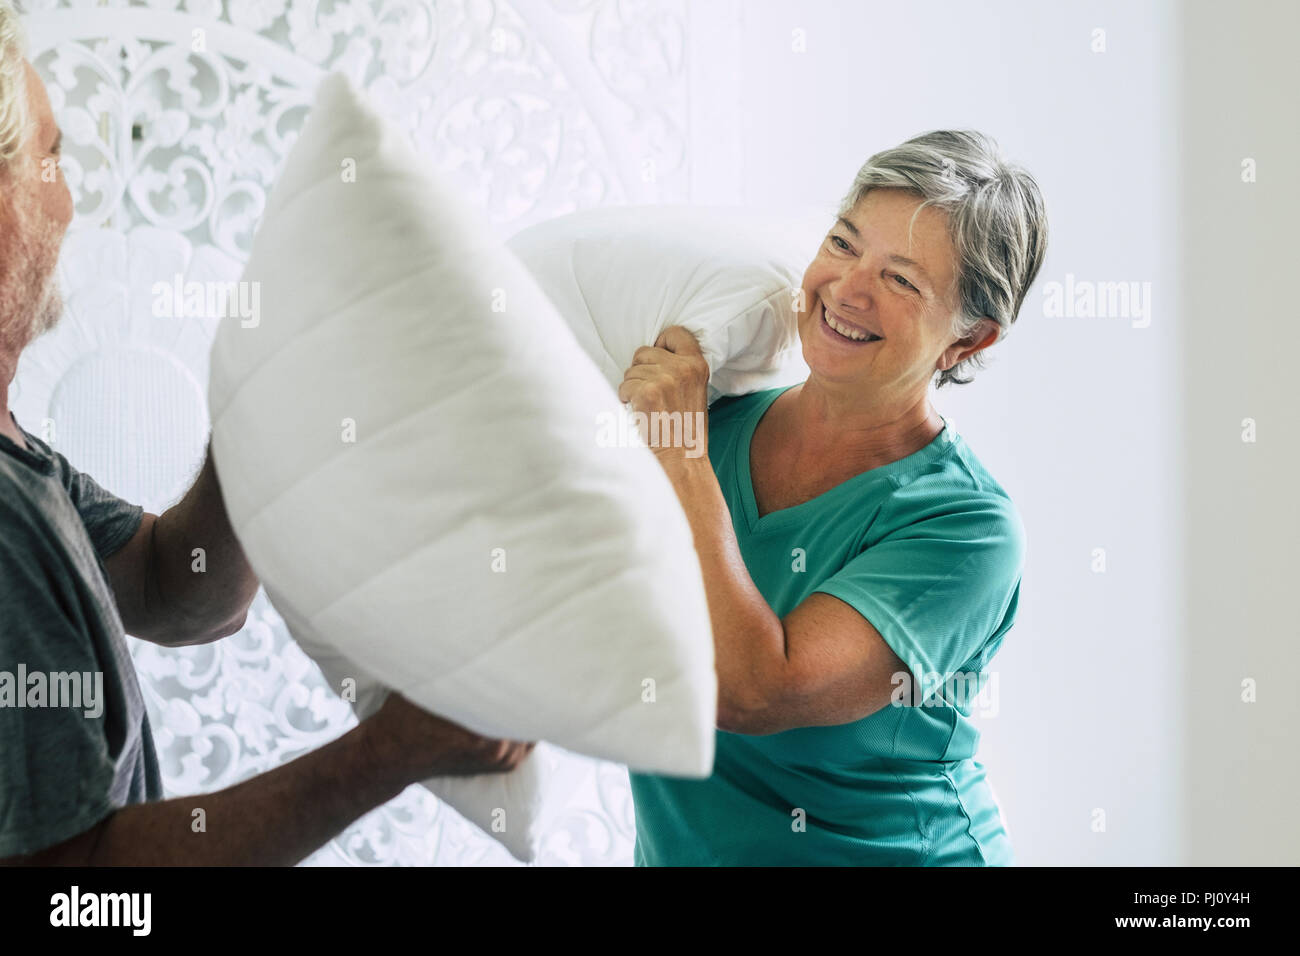 pillows war at home for caucasian couple of playful adult senior man and woman play in the bedroom at the morning. hapiness and joy together forever s - Stock Image